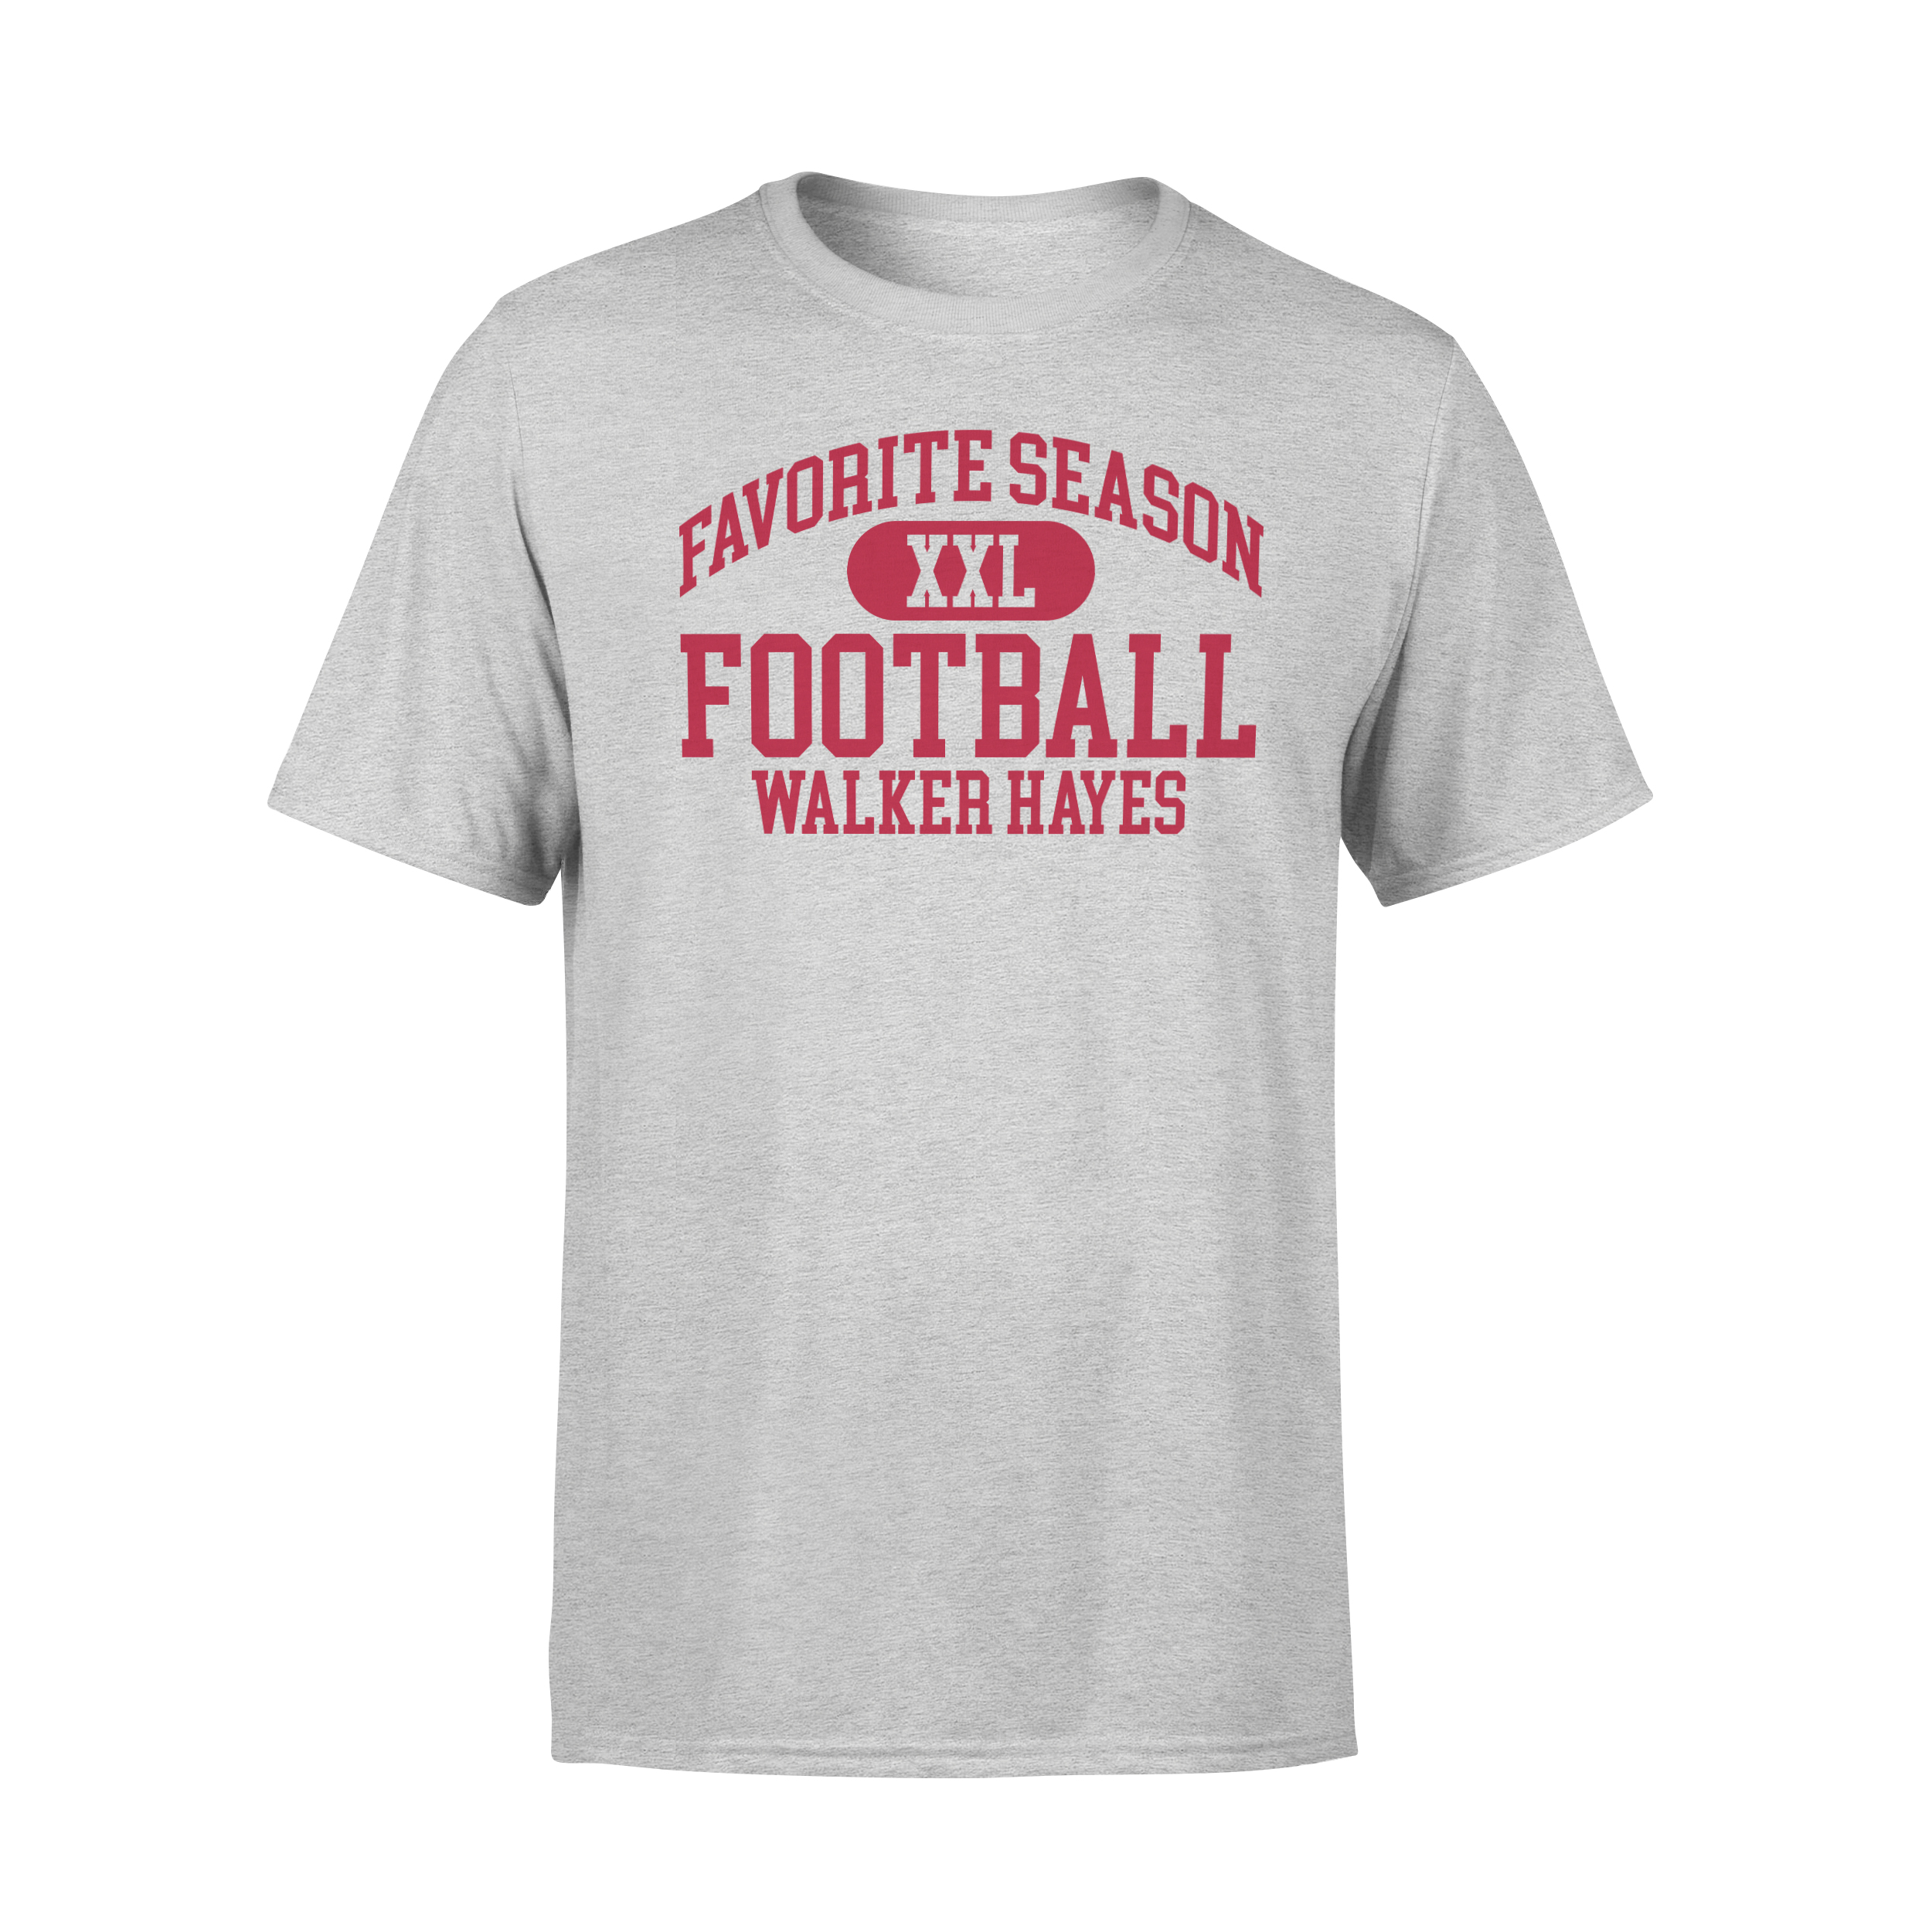 Favorite Season FOOTBALL T-shirt